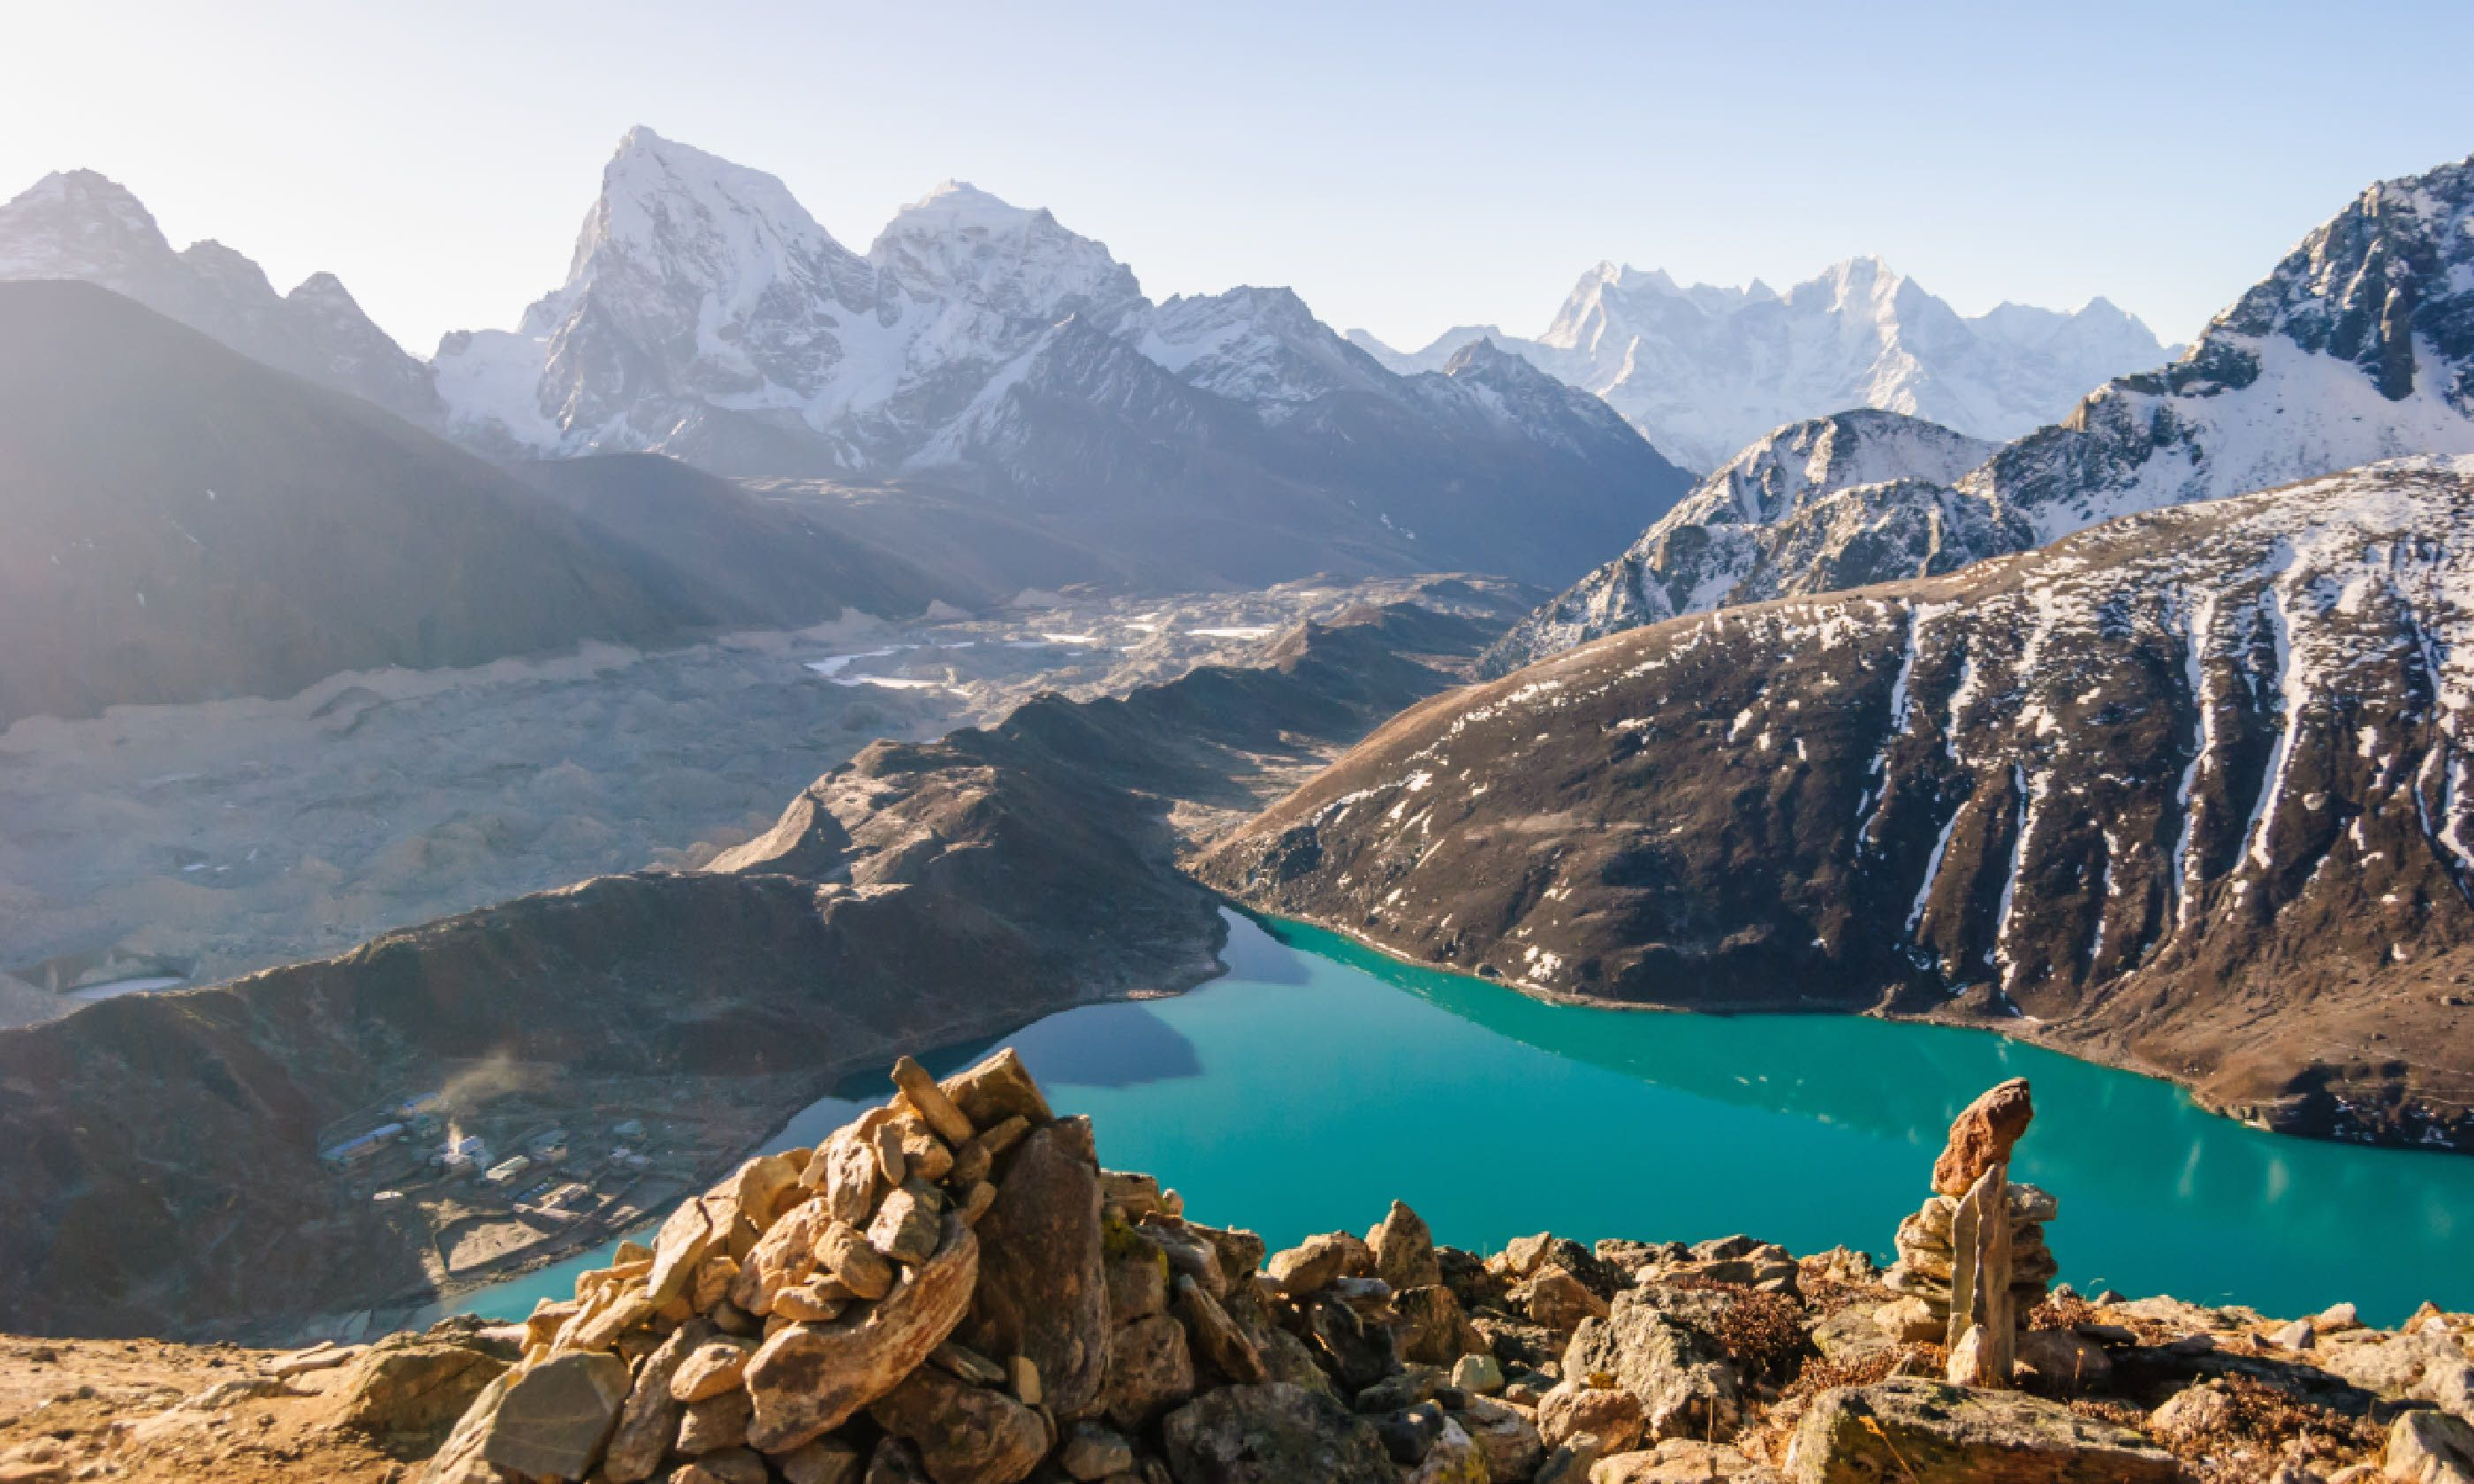 View from Gokyo Ri, at 5,360m in the Himalayas, Nepal (Shutterstock)